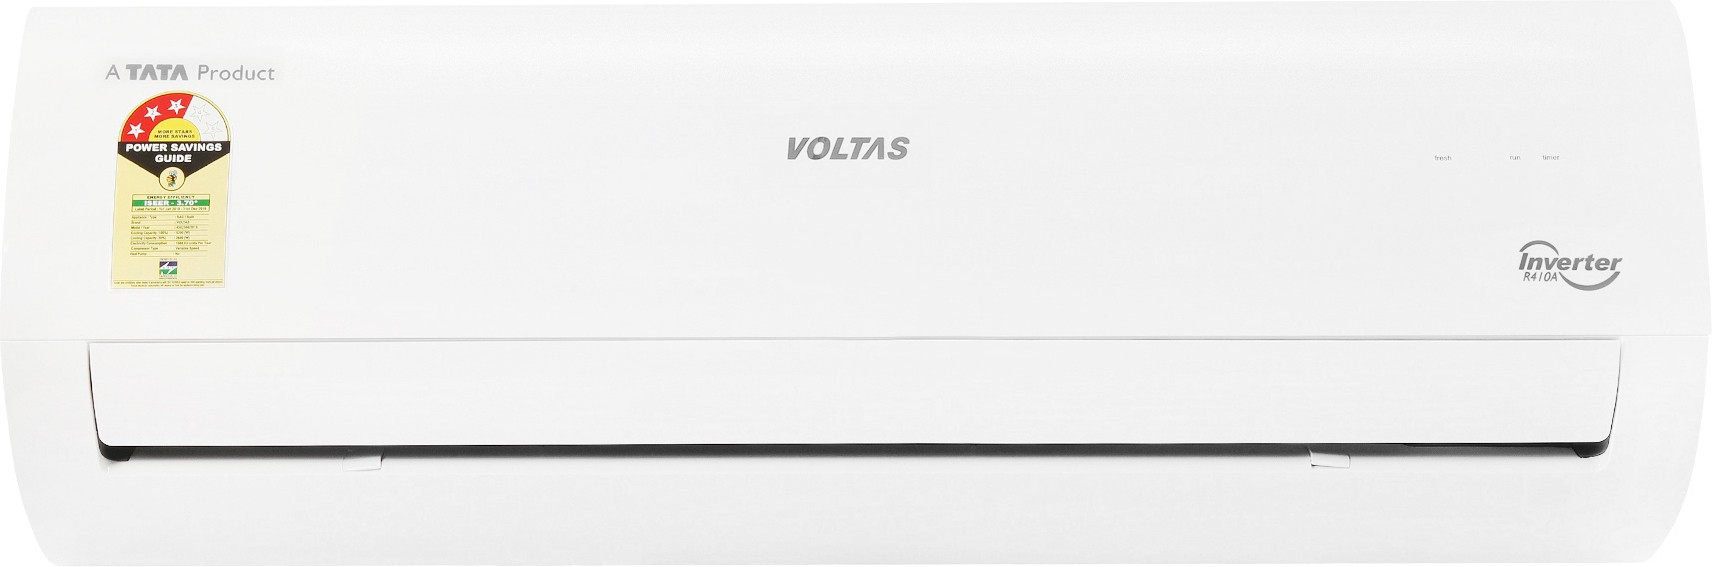 Voltas 183VCZT 1.5 Ton 3 Star BEE Rating 2018 Inverter AC Image